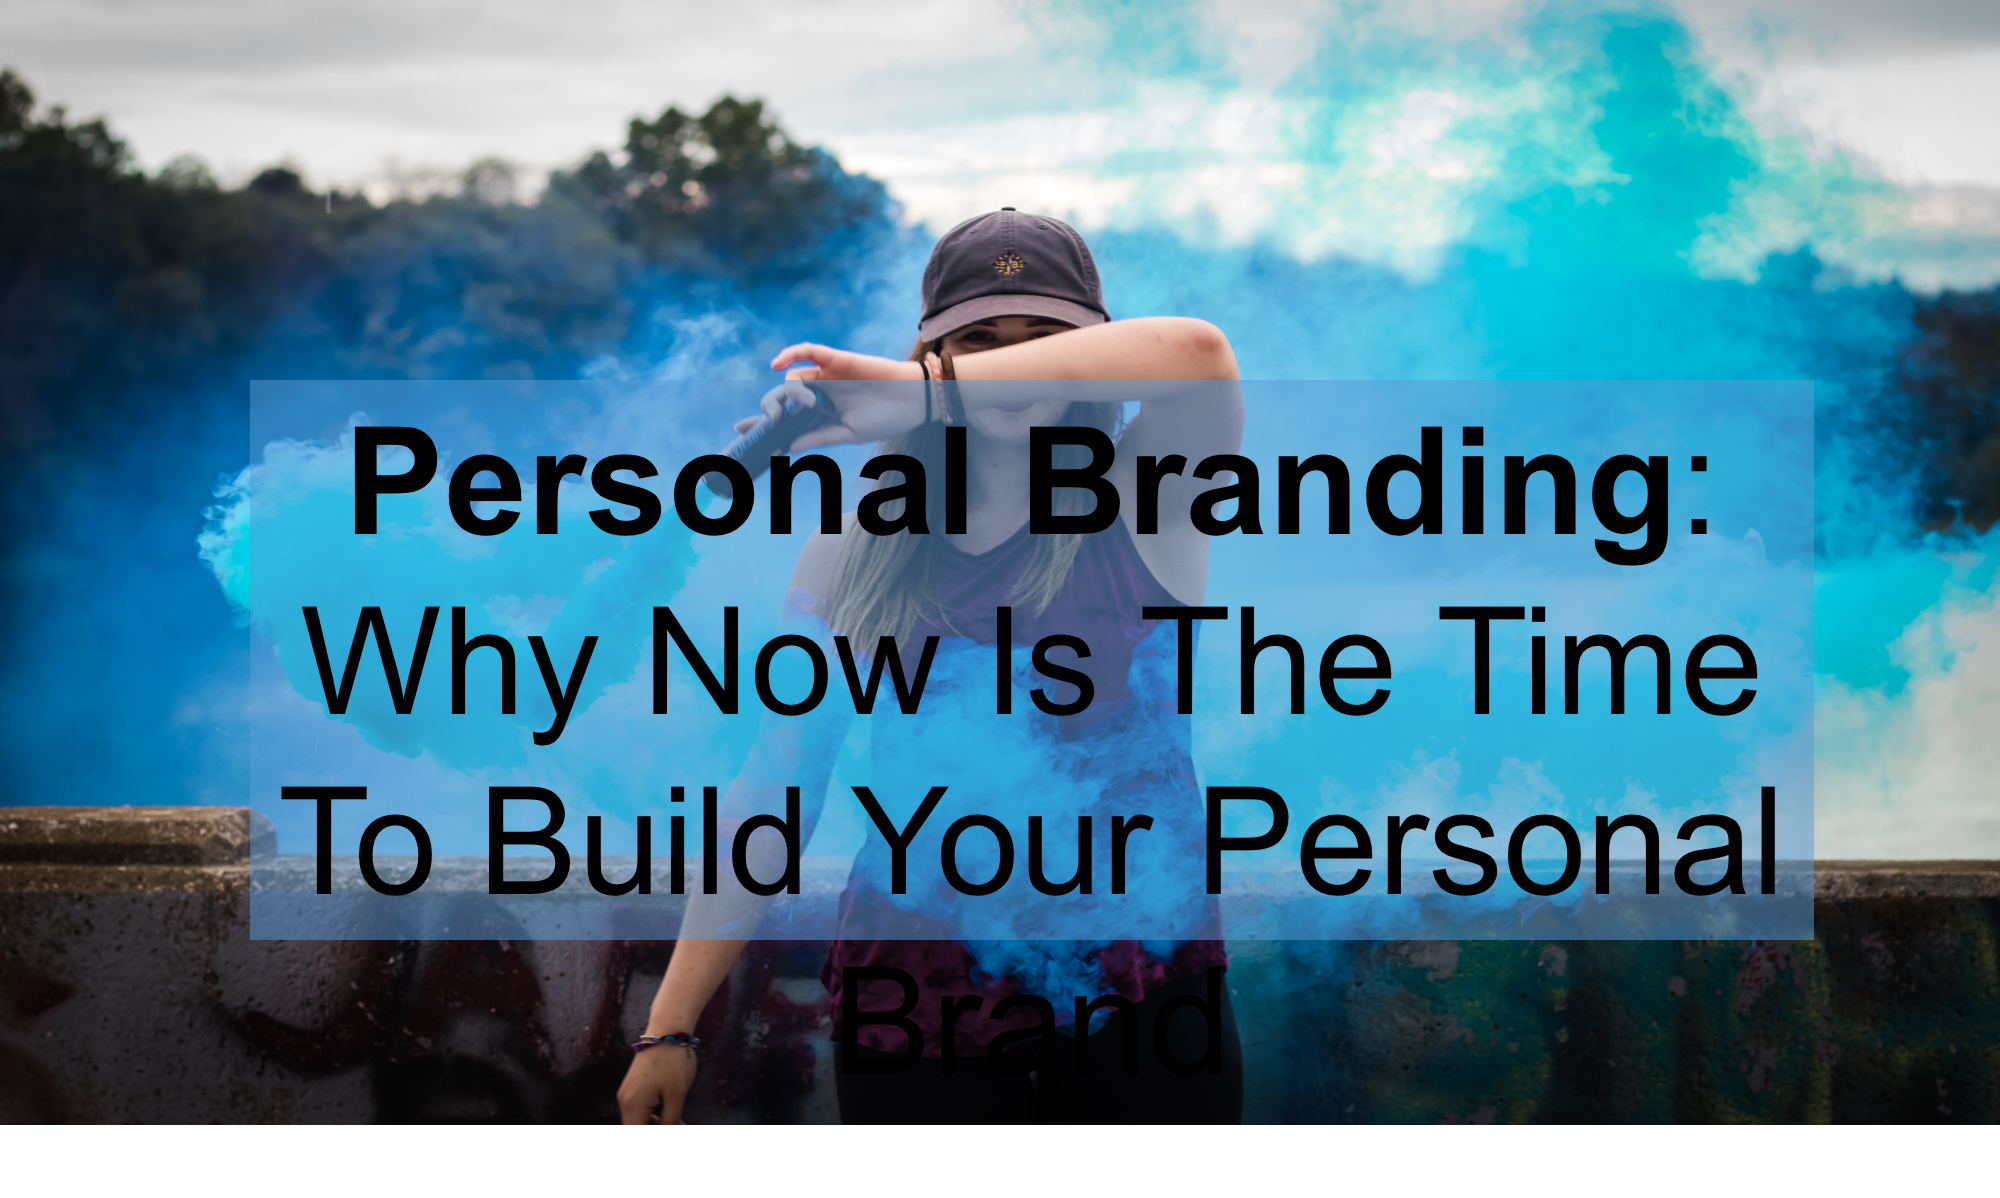 Personal Branding Why Now is the Time to Build Your